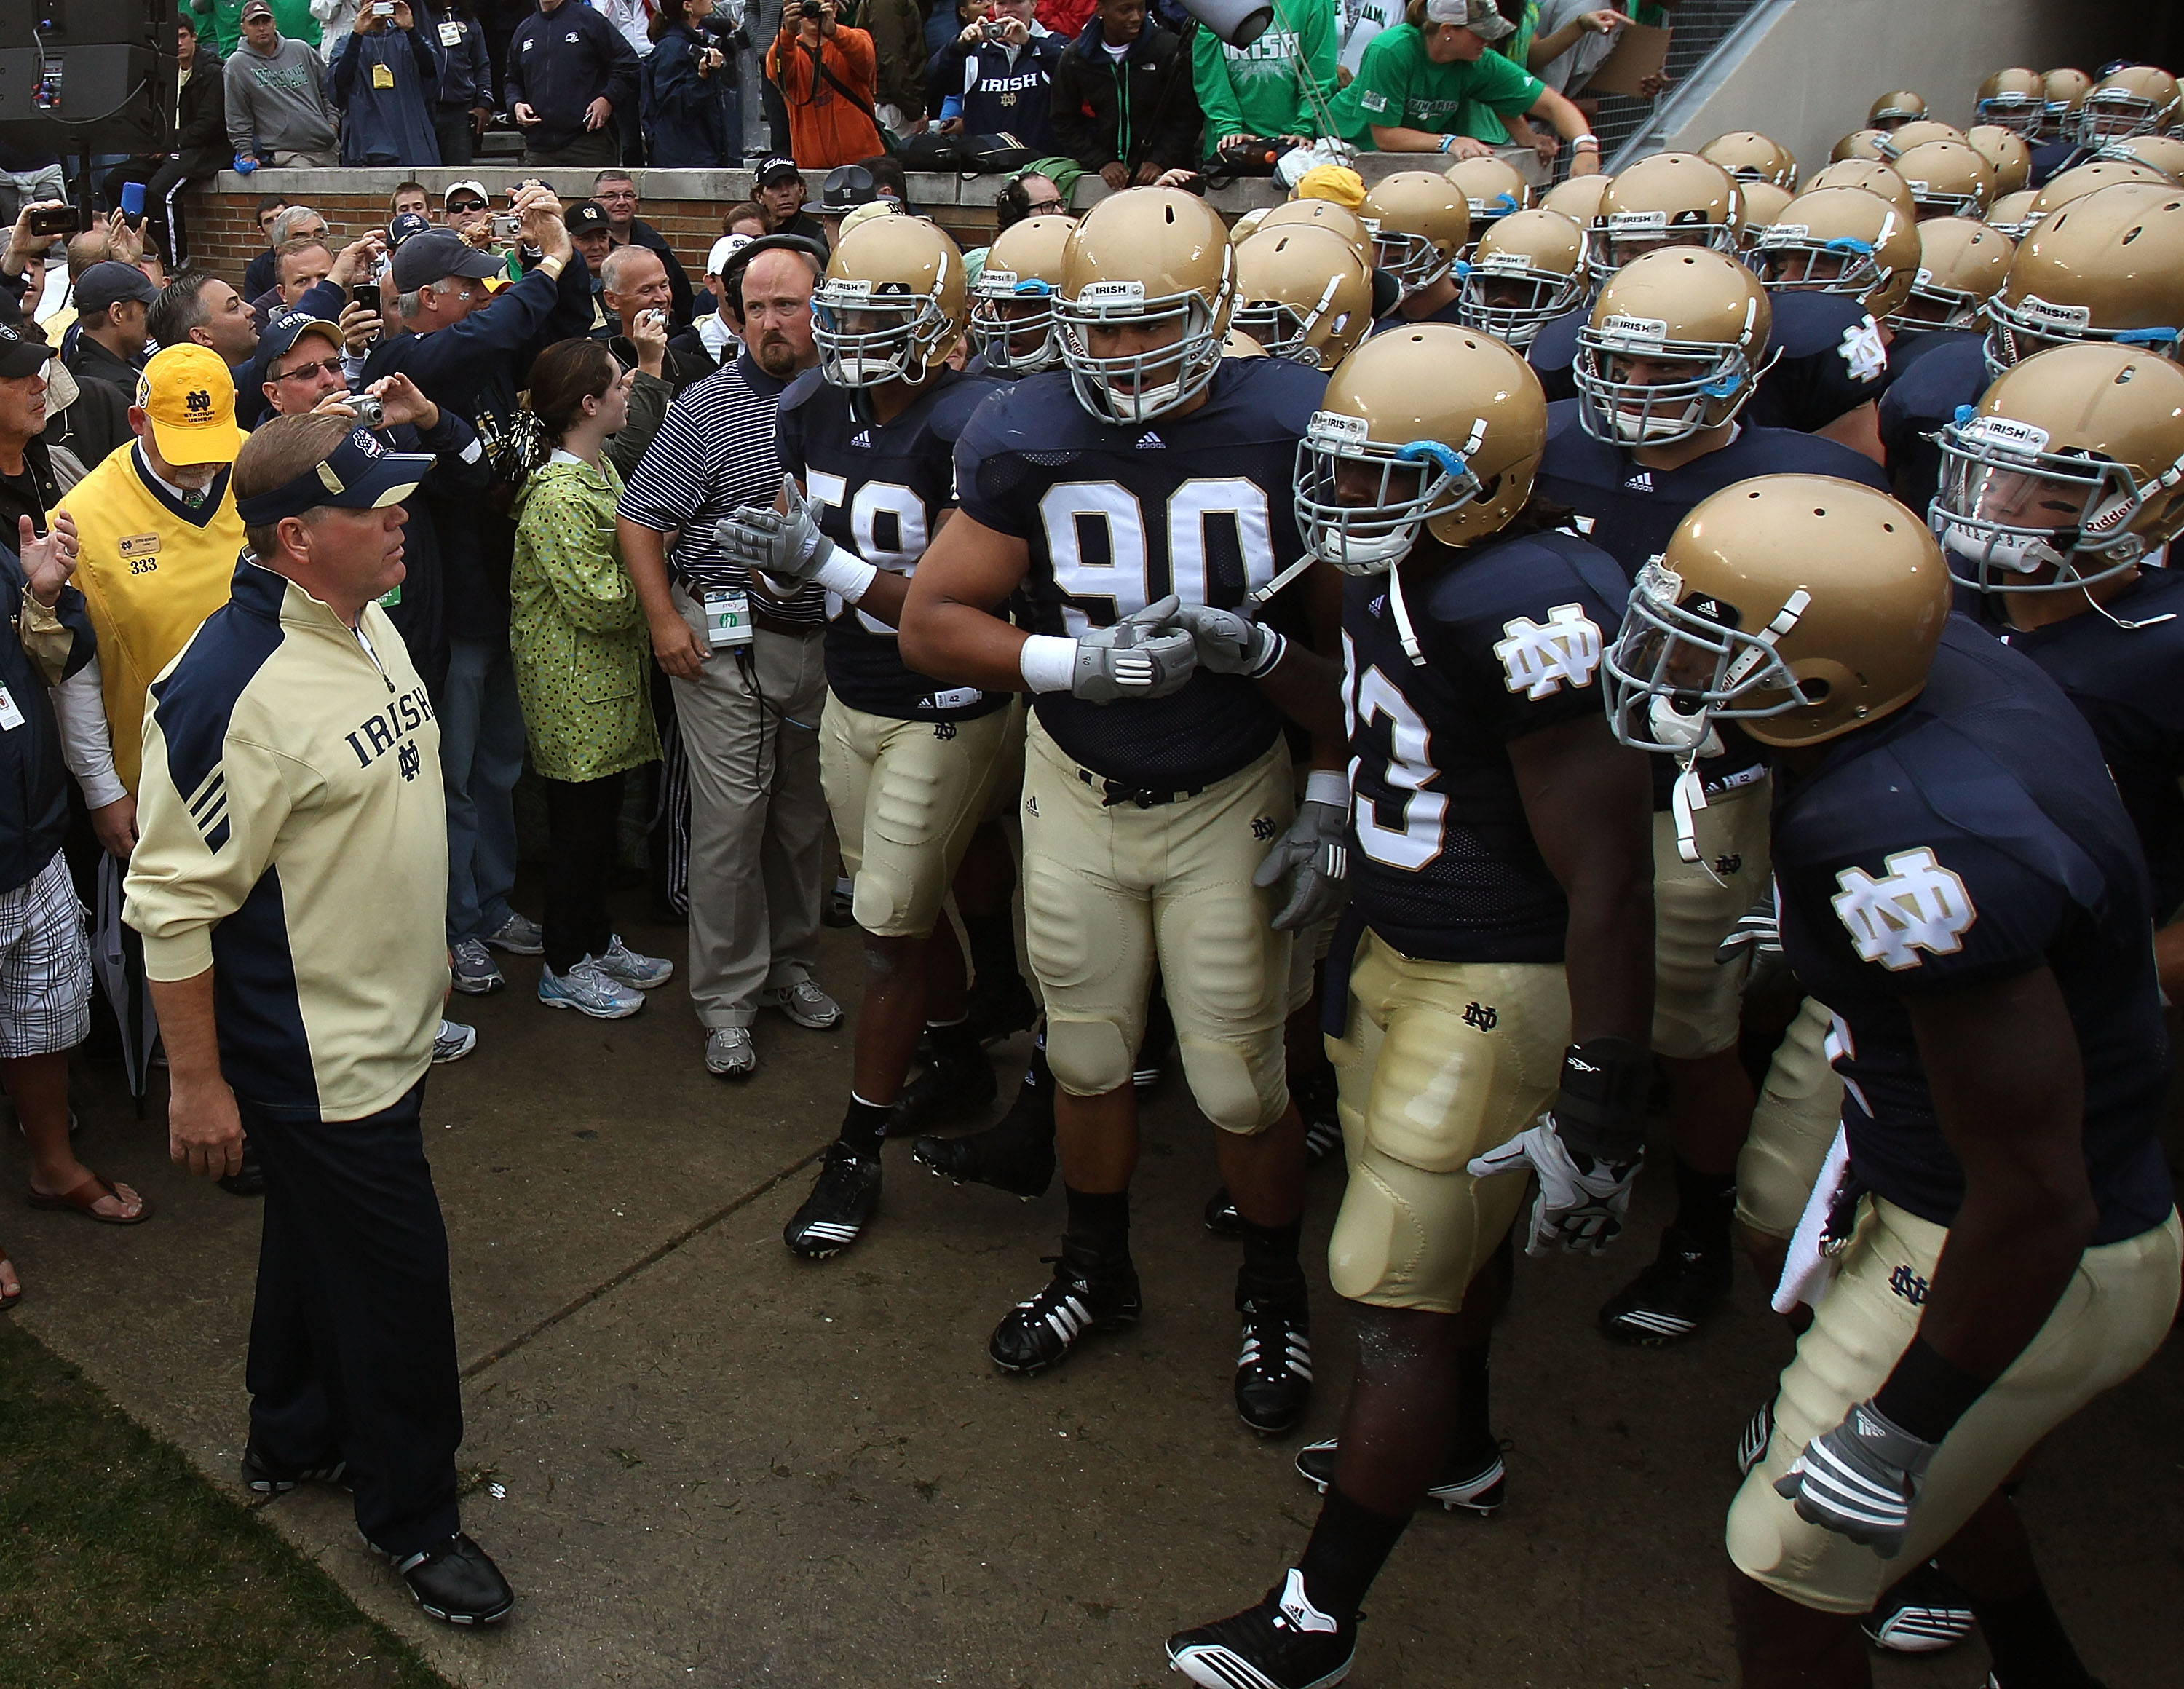 SOUTH BEND, IN - SEPTEMBER 11: Head coach Brian Kelly of the Notre Dame Fighting Irish (L) waits to enter the field with his team before a game against the Michigan Wolverines at Notre Dame Stadium on September 11, 2010 in South Bend, Indiana. Michigan de